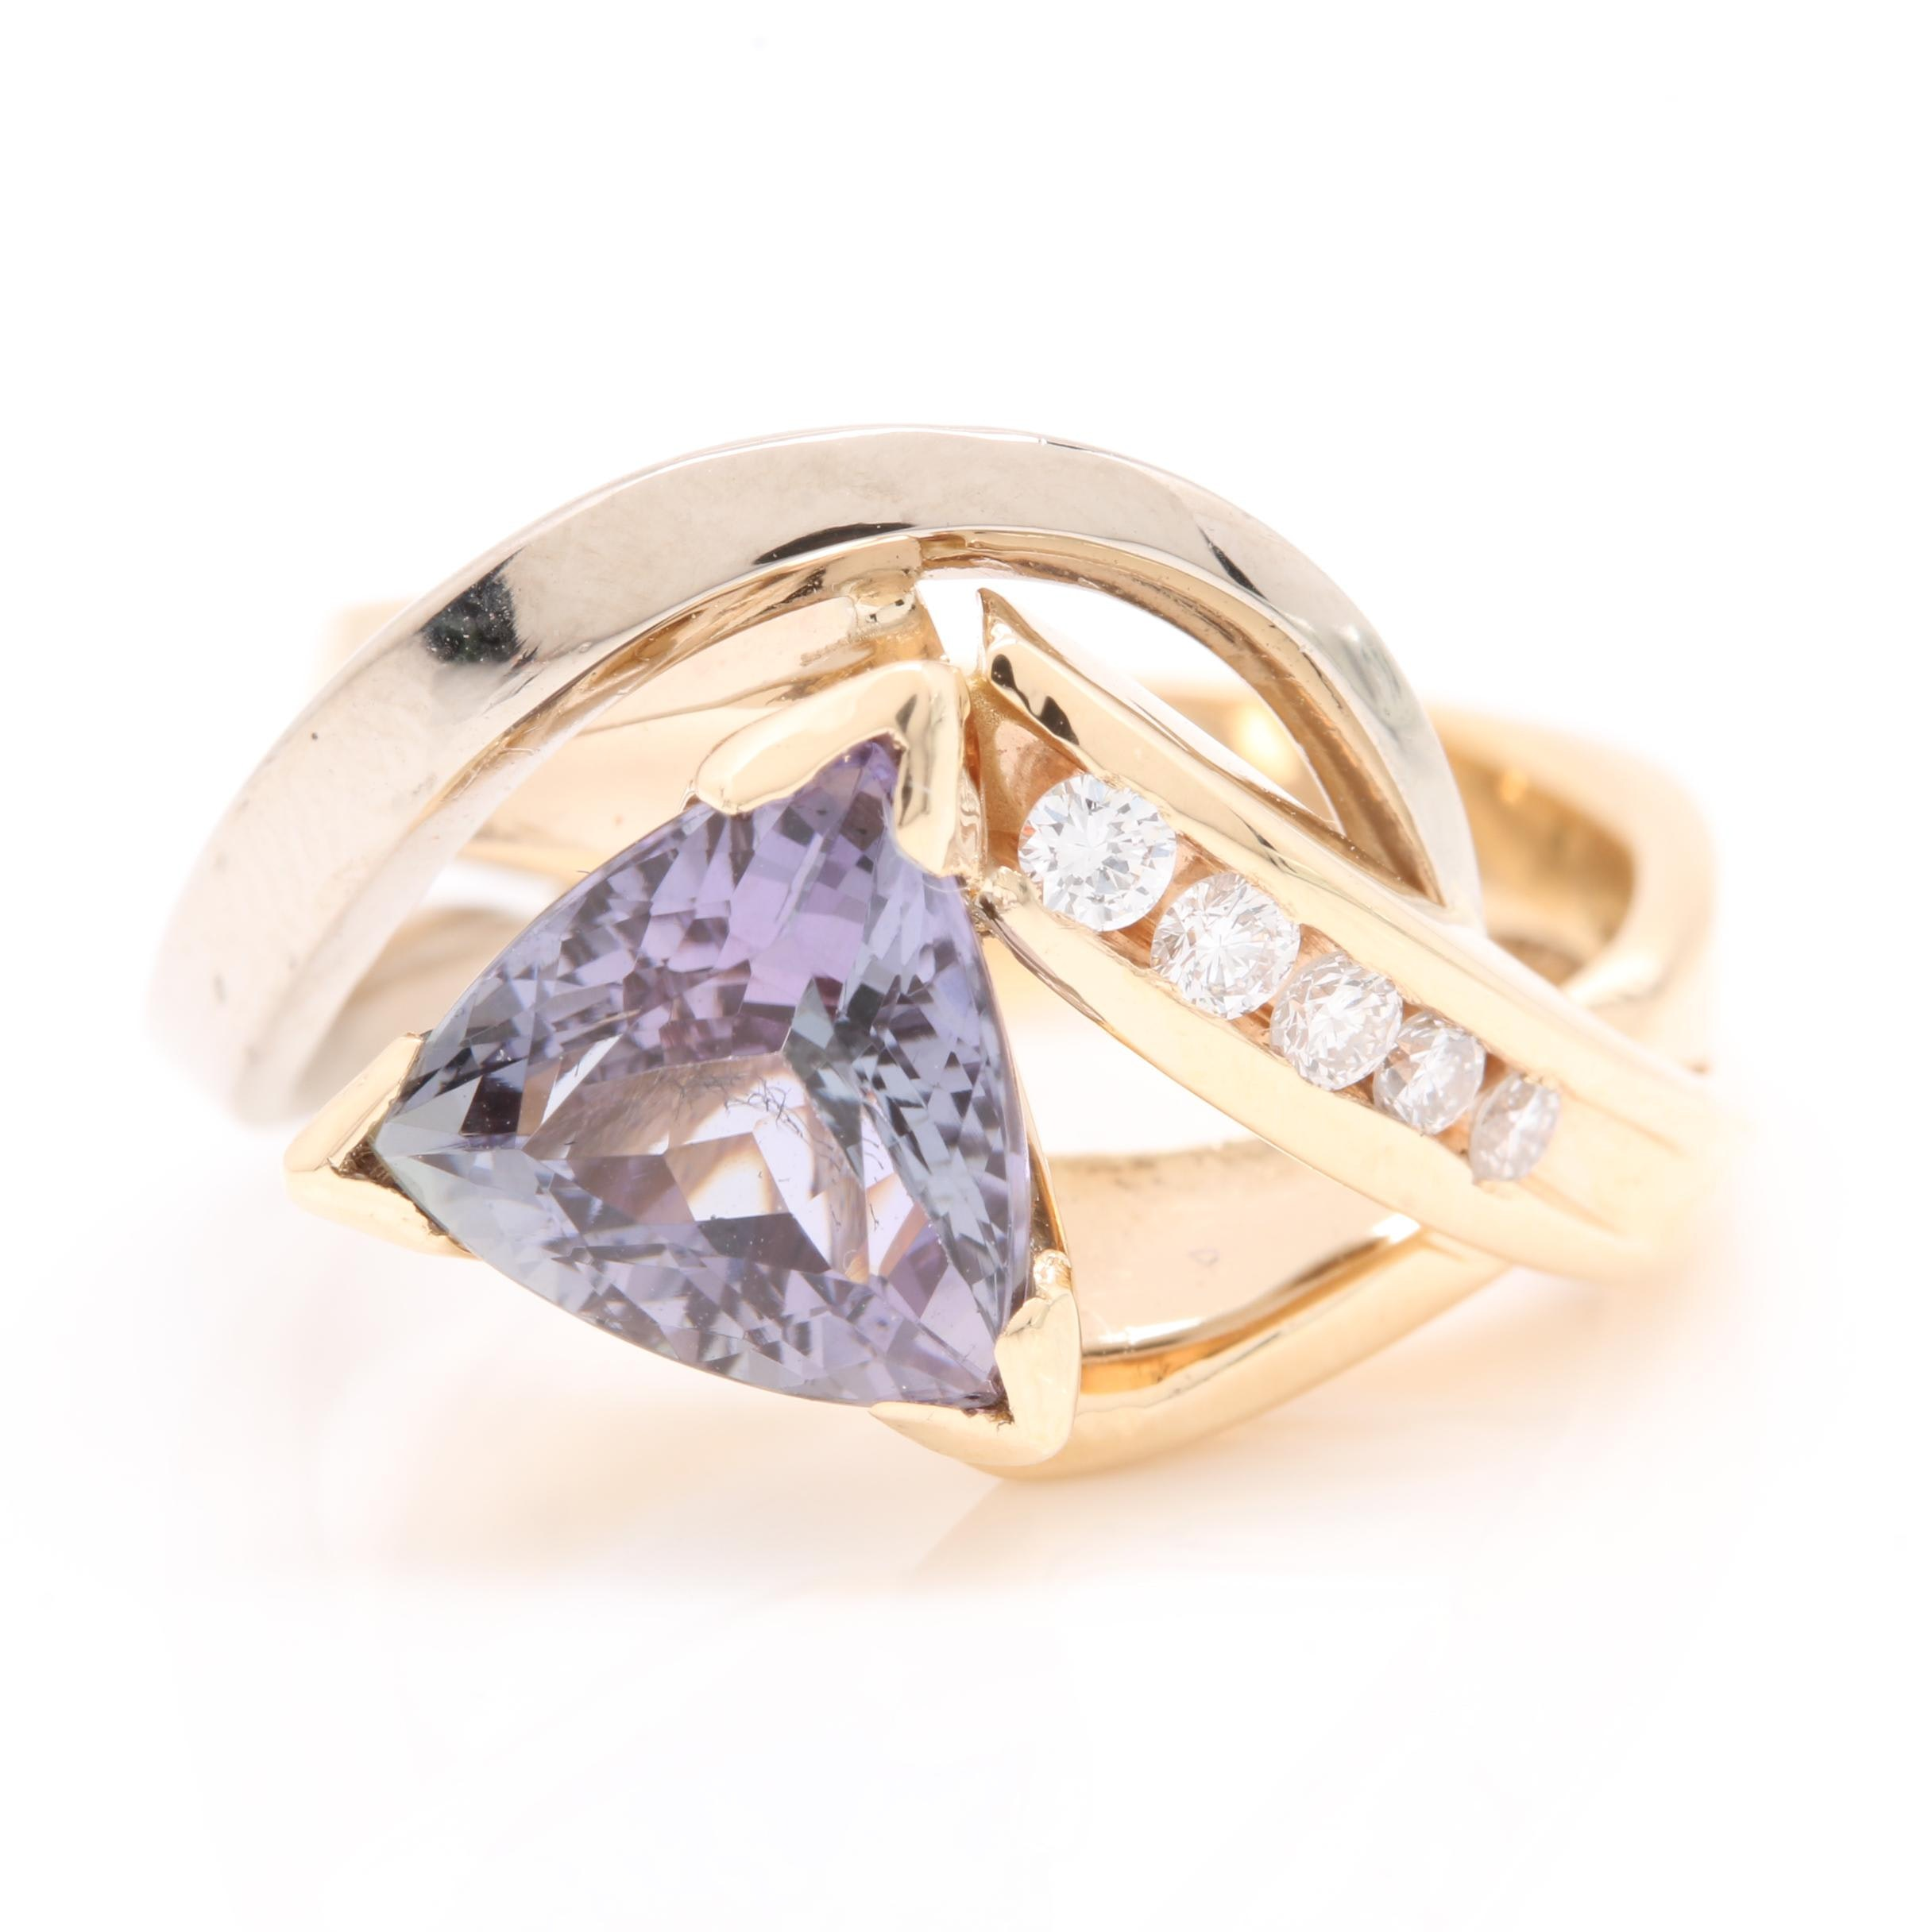 14K Yellow Gold Tanzanite and Diamond Ring with 18K White Gold Accent